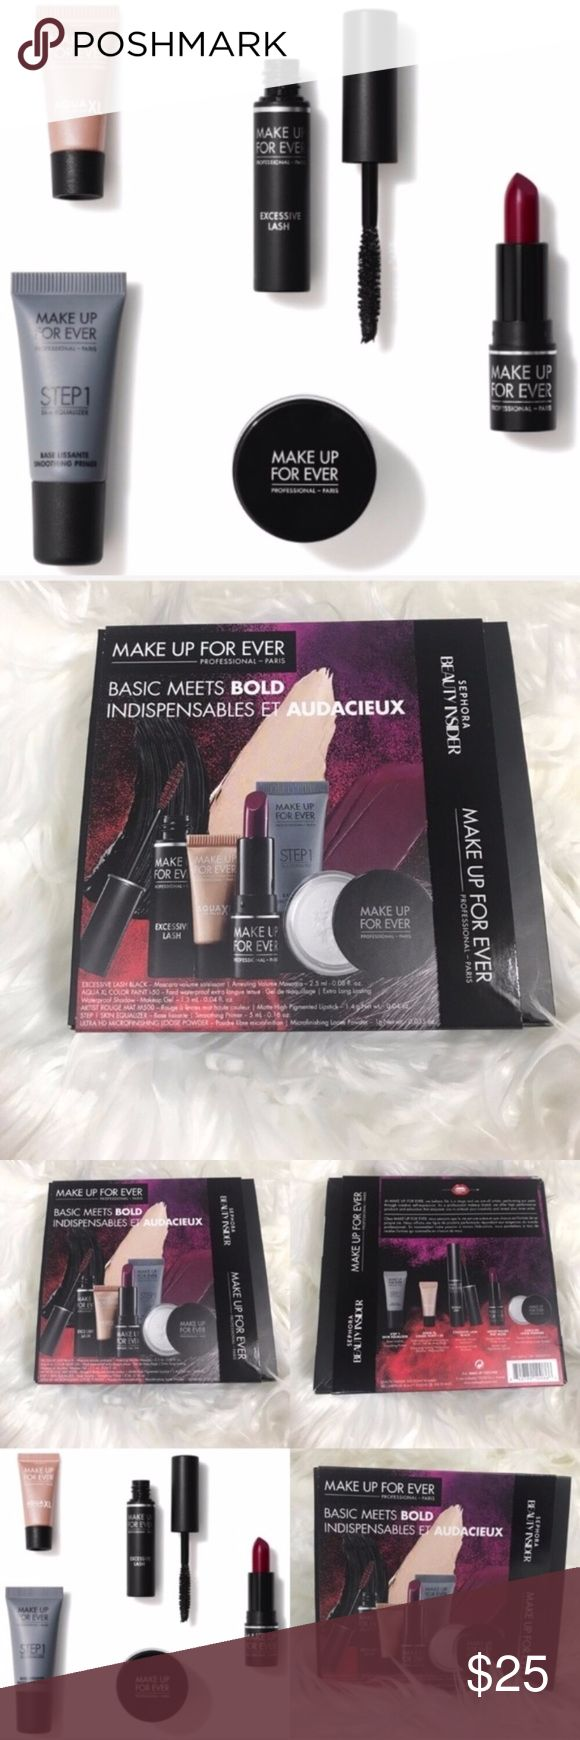 """Make Up For Ever Sephora Point Basic Meets Bold + 500 Sephora points = $500 spent in order to purchase this + Brand new 500 point reward from Sephora / Make Up For Ever called """"Basic Meets Bold"""" + This reward includes: - 0.16 oz/ 5 mL Make Up For Ever Step 1 Skin Equalizer Primer - 0.035 oz/ 1 g Make Up For Ever Ultra HD Loose Powder - 0.04 oz/ 1.3 mL Make Up For Ever Aqua XL Colour Paint in I-50 - 0.08 oz/ 2.5 mL Make Up For Ever Excessive Lash Arresting Volume Mascara - 0.04 oz/ 1.4 g Make…"""